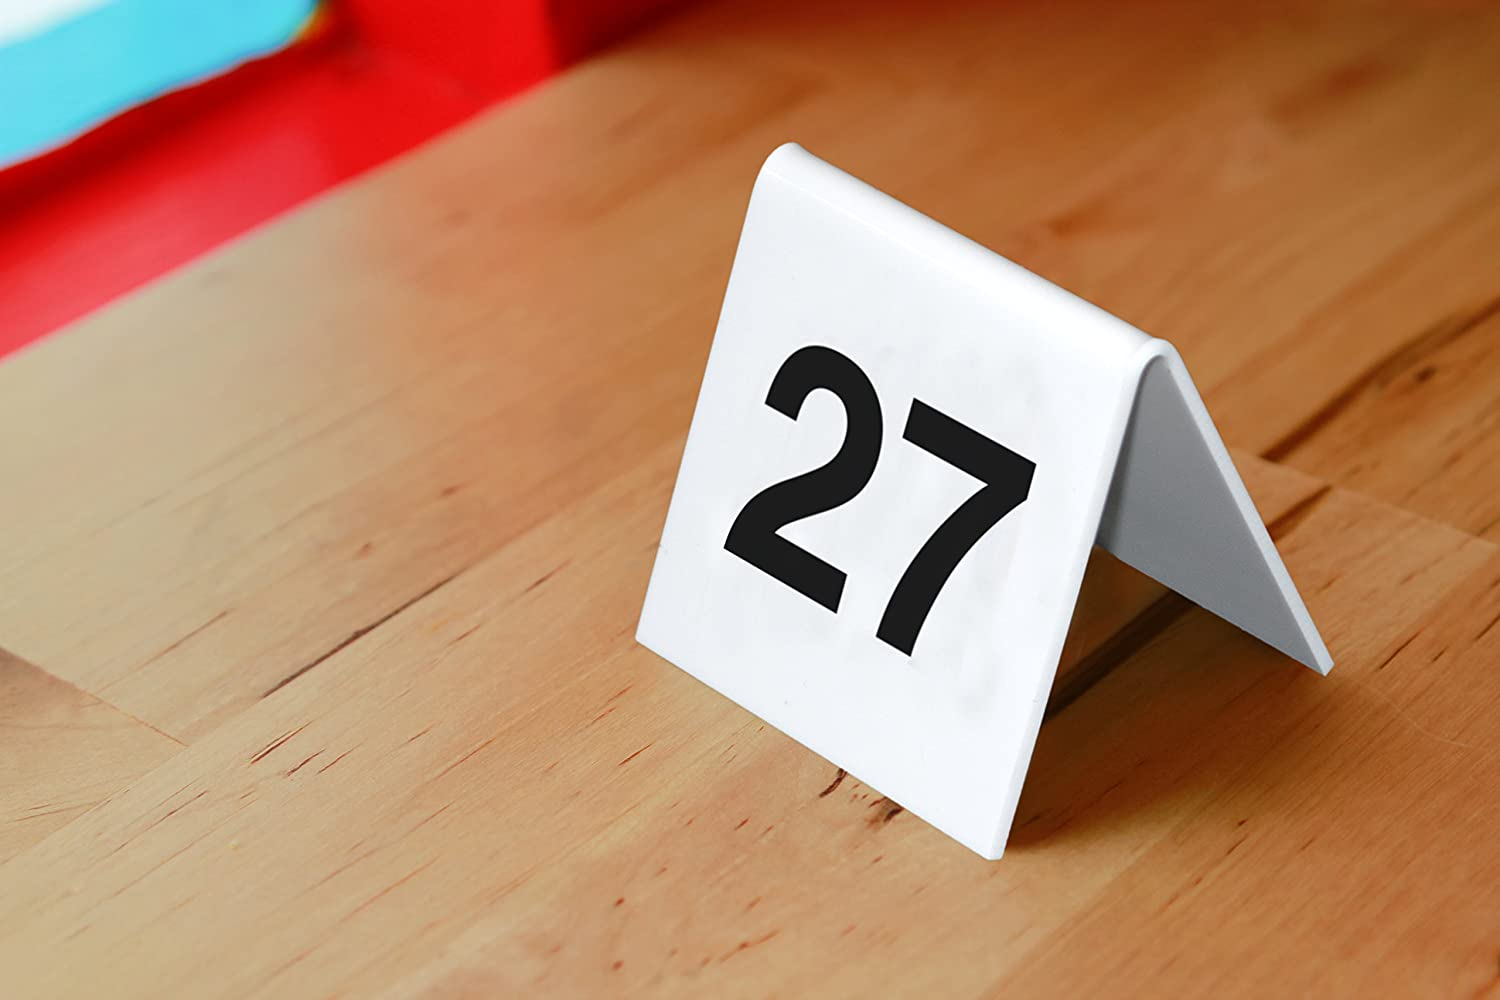 SECURIT TN-21-30-WT Table Boards - Accessories Signssecurit® Table Numbers From 21-30 - White Acrylic Standards With Black Numbers - Set Of 10 5,2X5,2X4,5Cm | 0,1Kgwhite